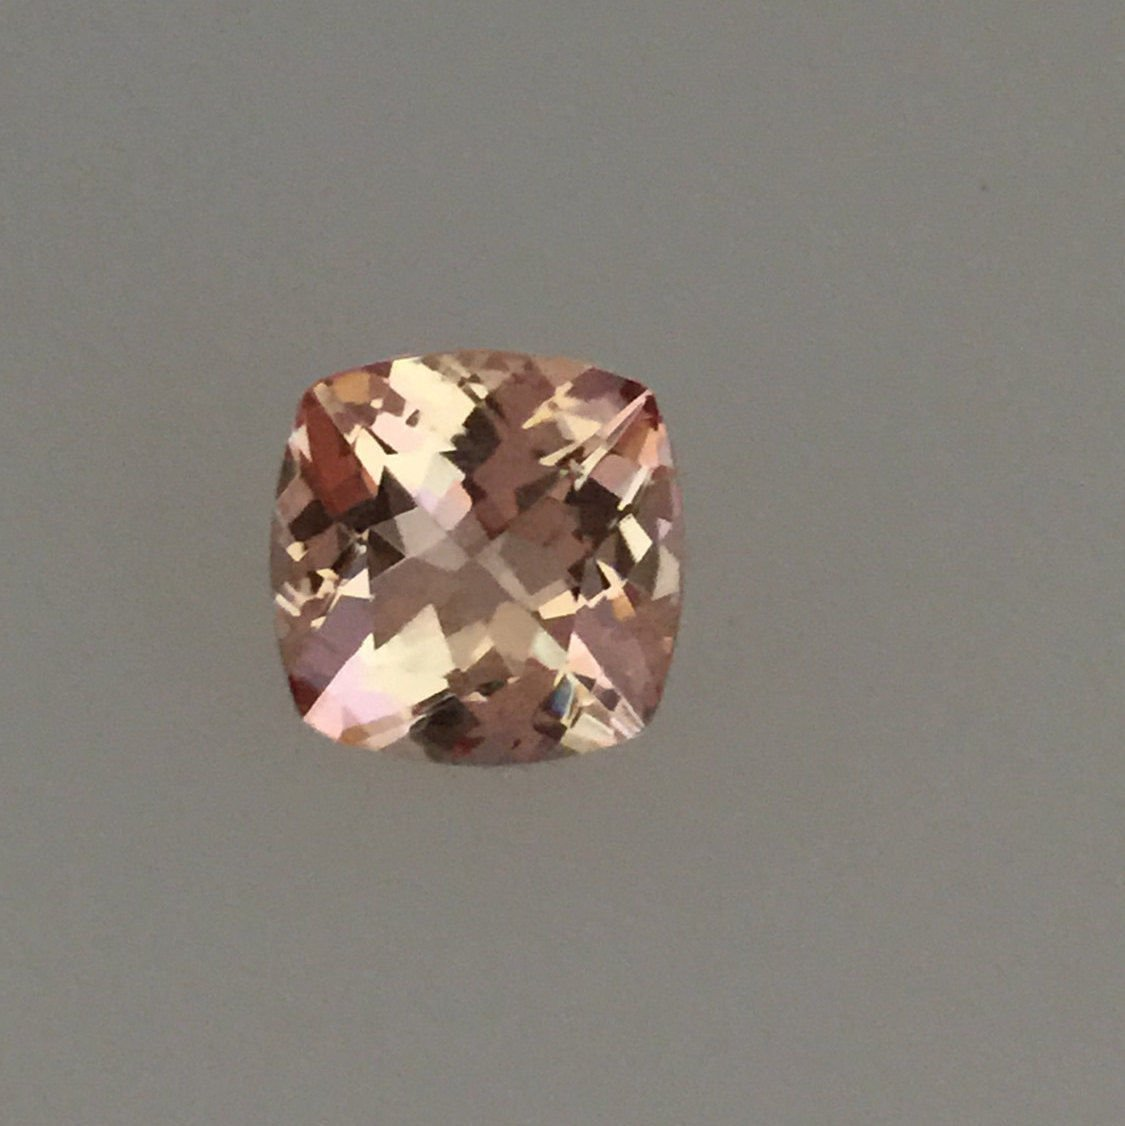 Natural Morganite 6mm Cushion  Faceted Cut 2 Piece Top Quality Peach Color Loose Gemstone